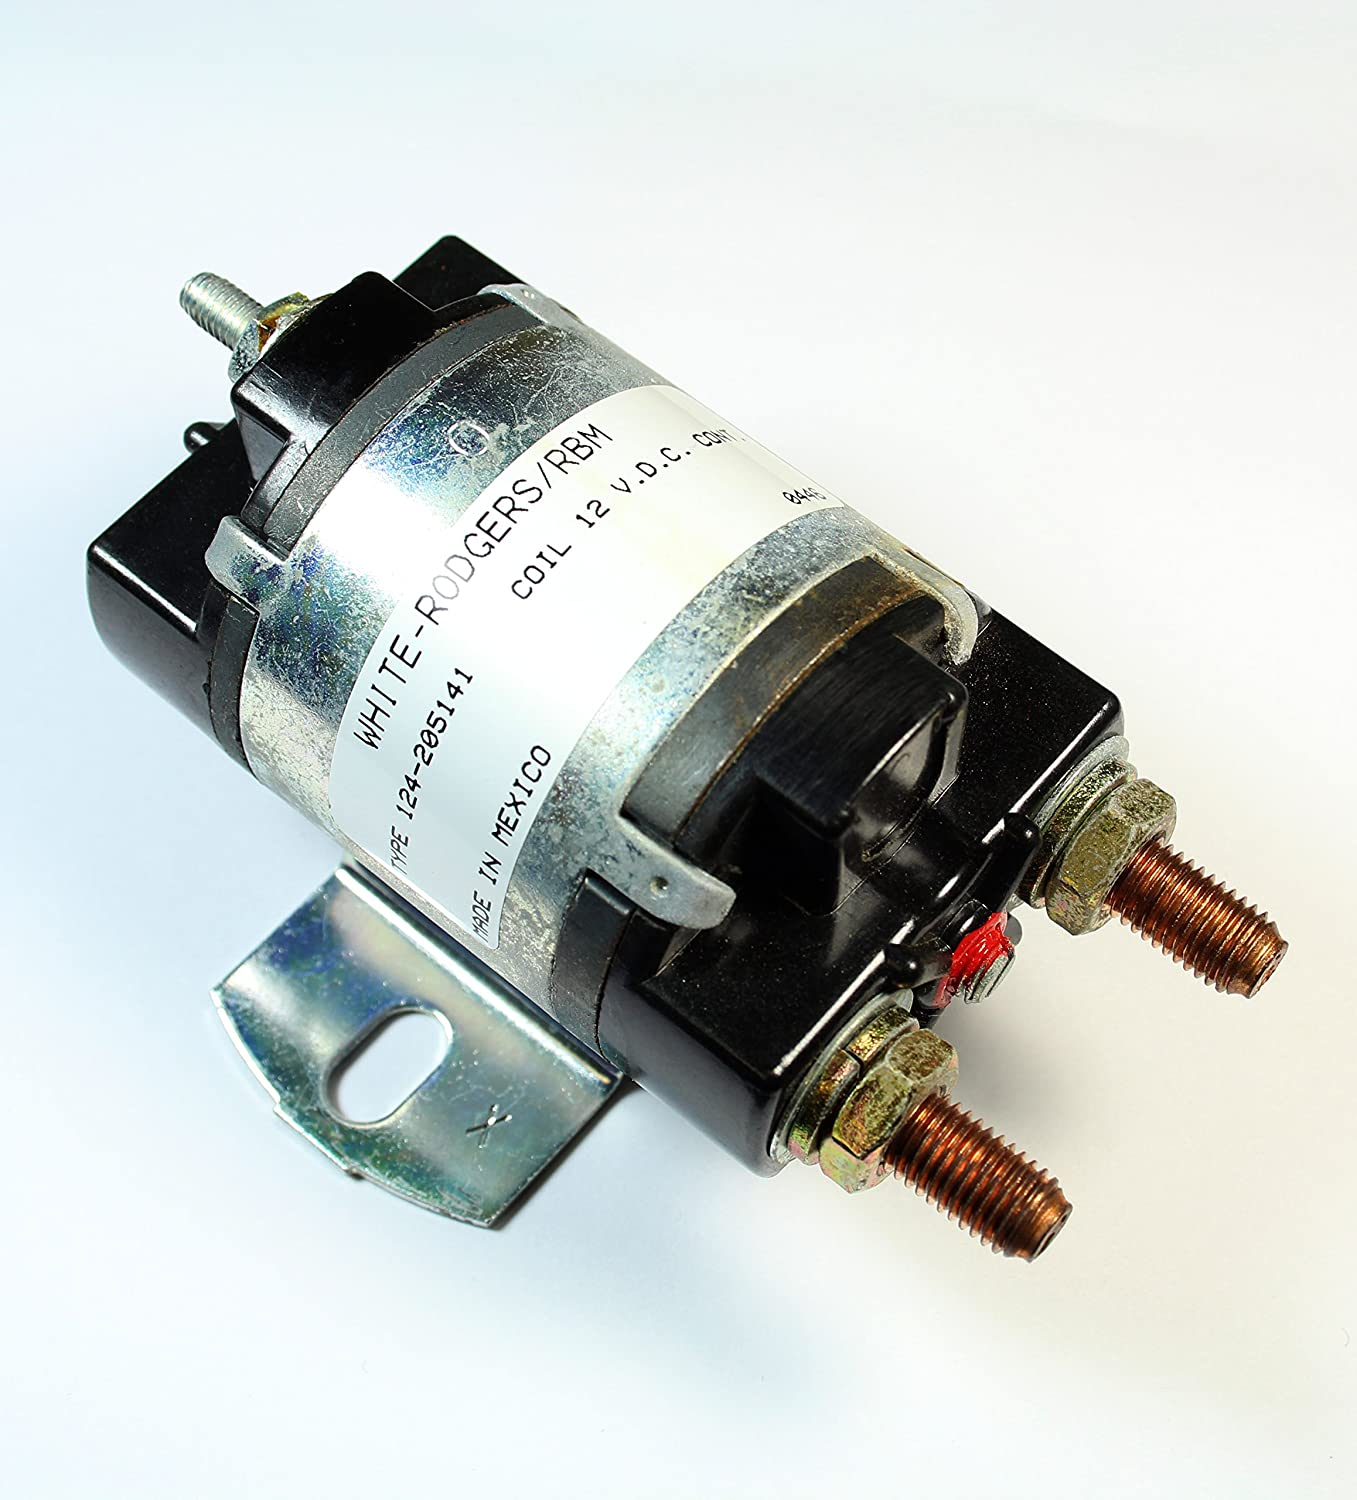 NEW*** WHITE RODGERS Solenoid 124-205141 Coil 12 v.d.c Continuous T2 3c